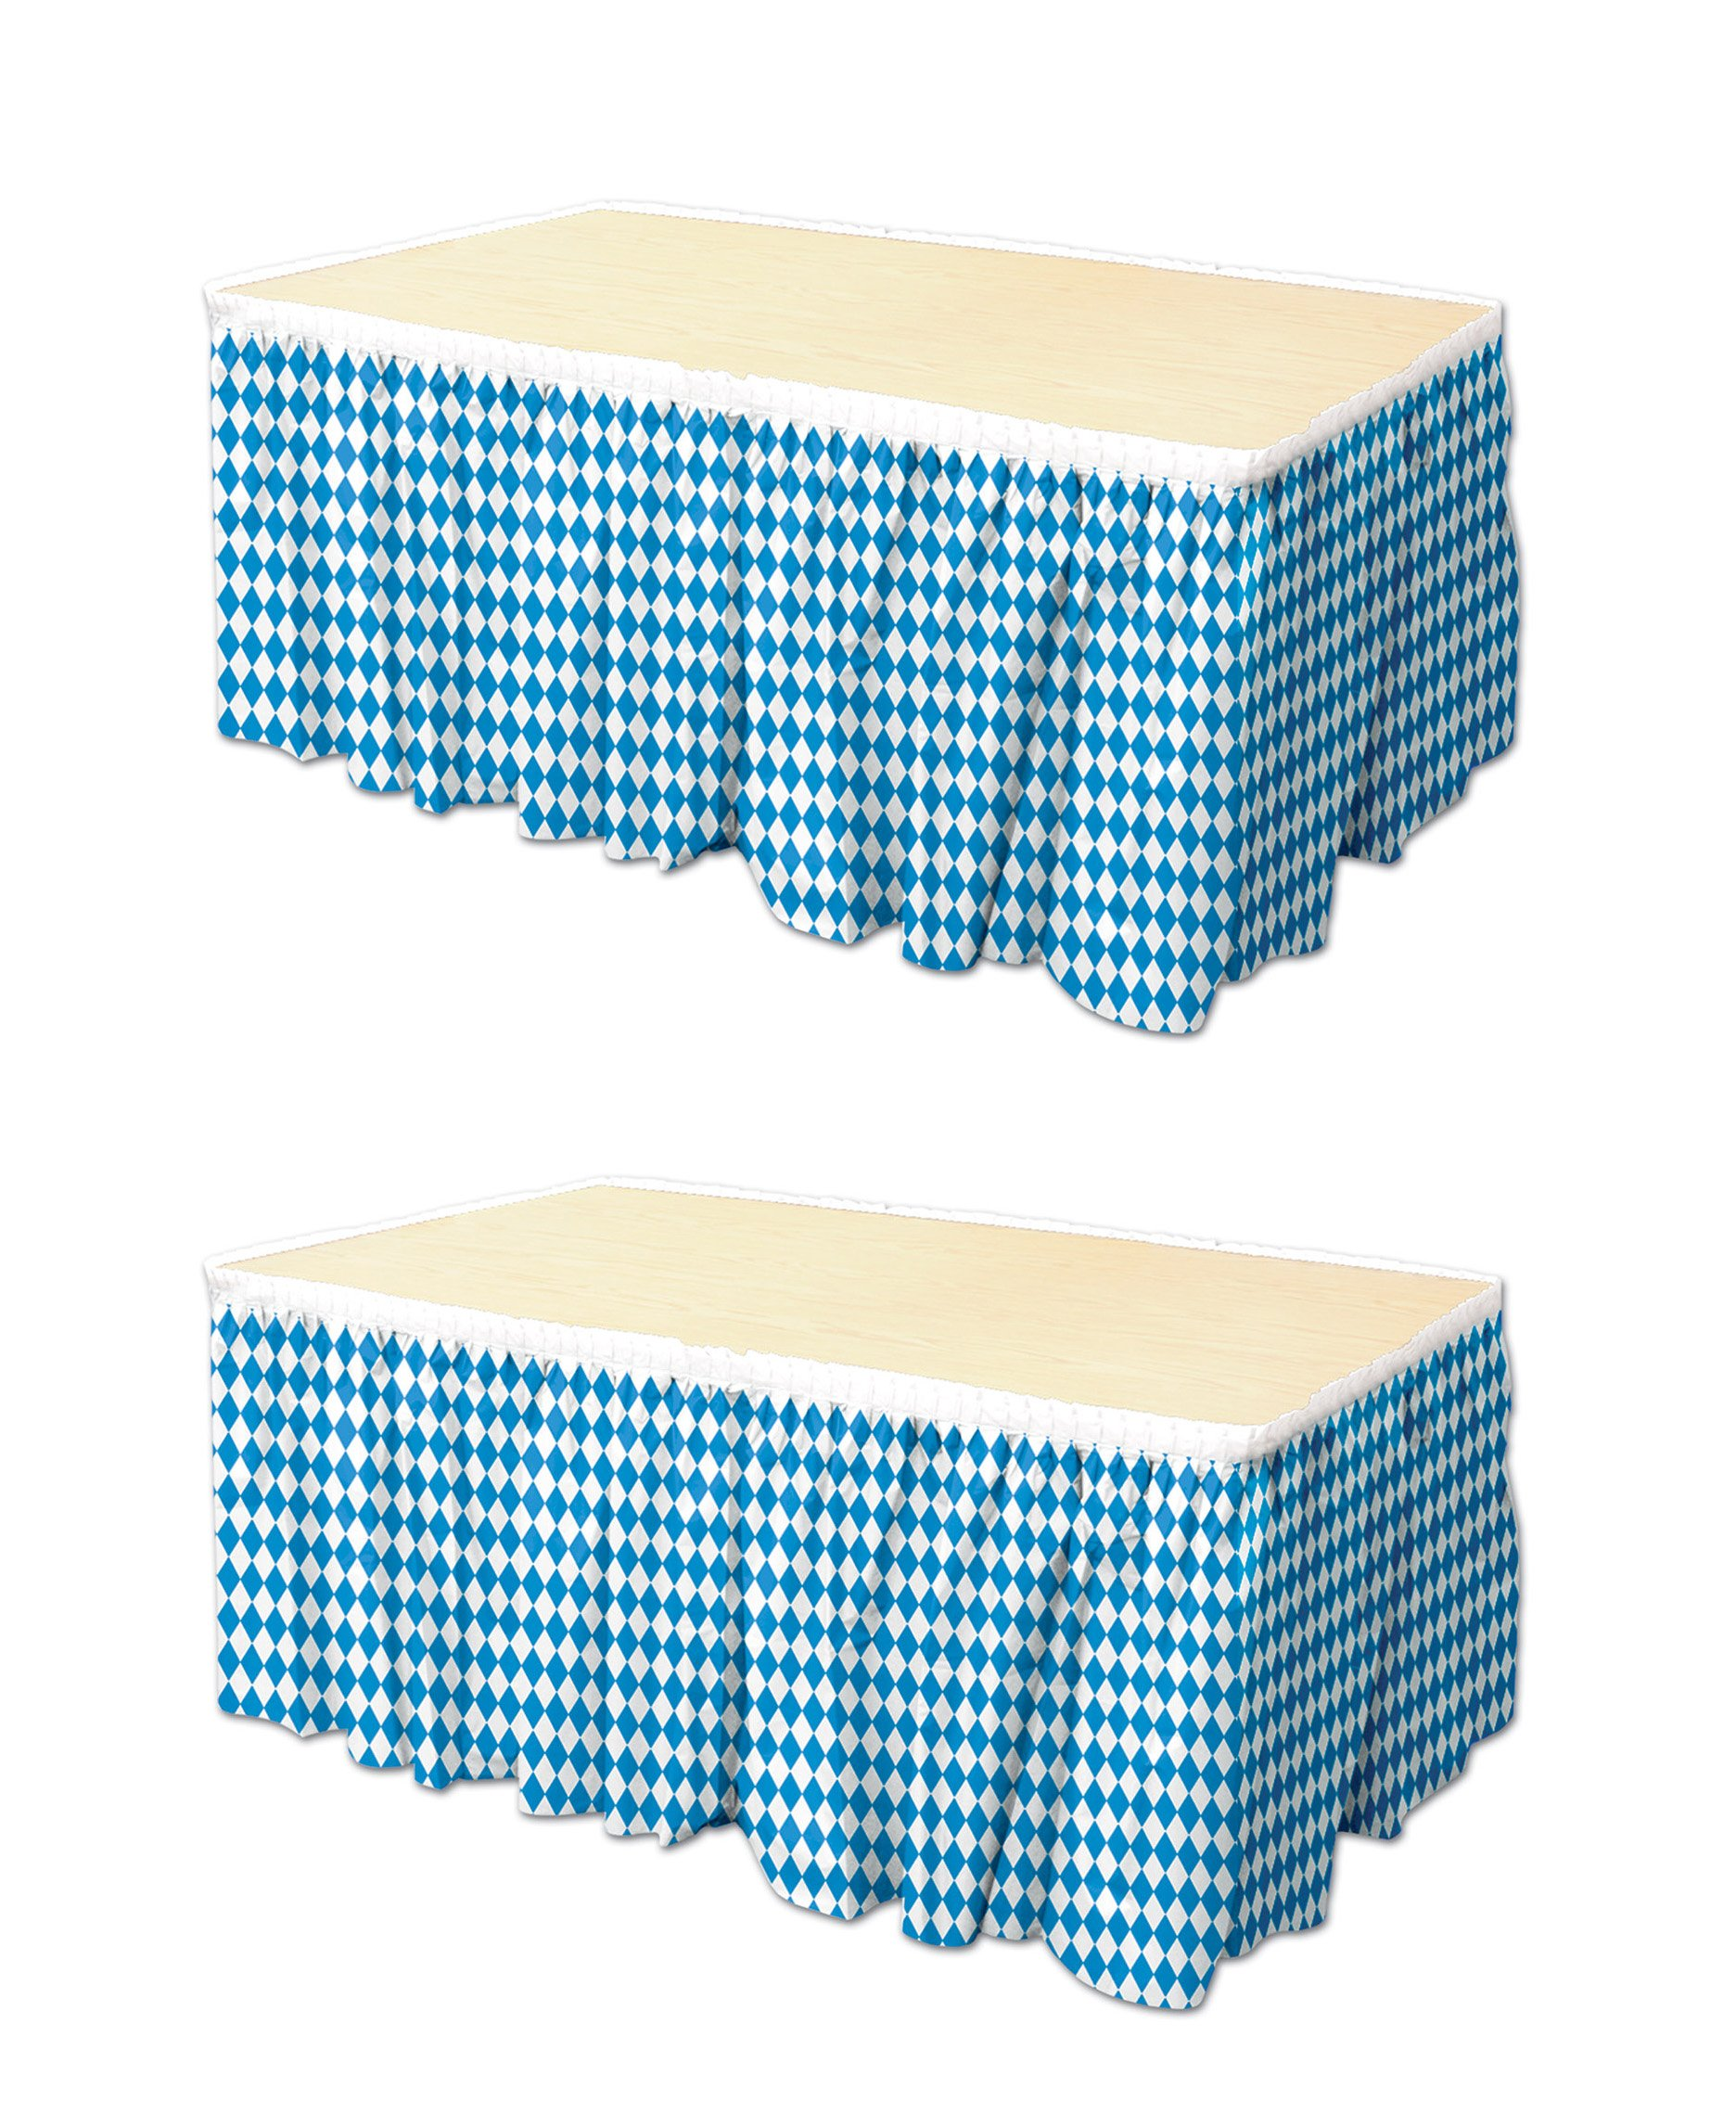 Beistle S58078AZ2, 2 Piece Oktoberfest Table Skirtings, 29'' x 14' (Blue,White)